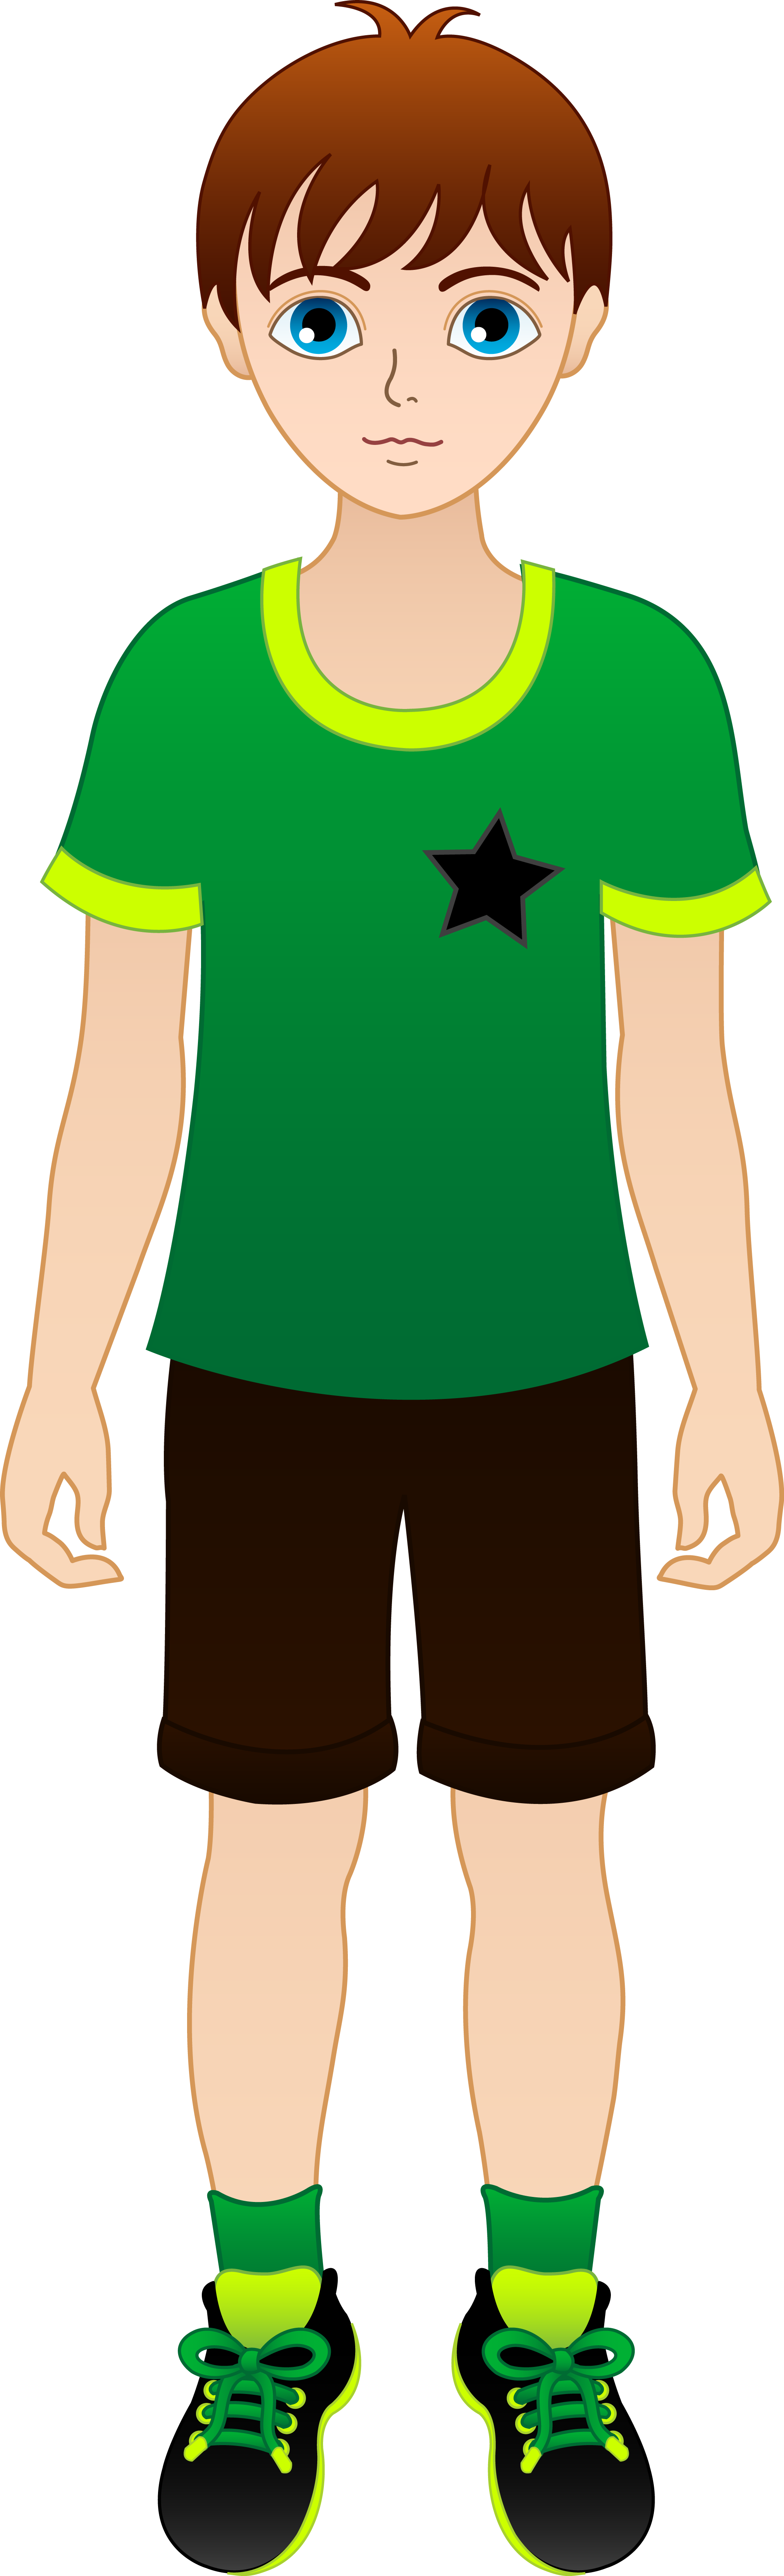 Clipart smile brown haired man. Young boy with hair